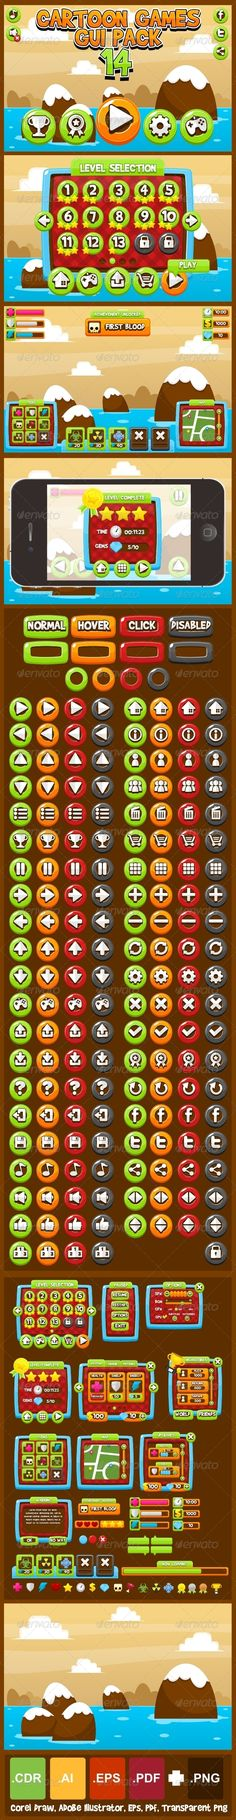 Cartoon Games GUI Pack 14 - Web Elements Vectors